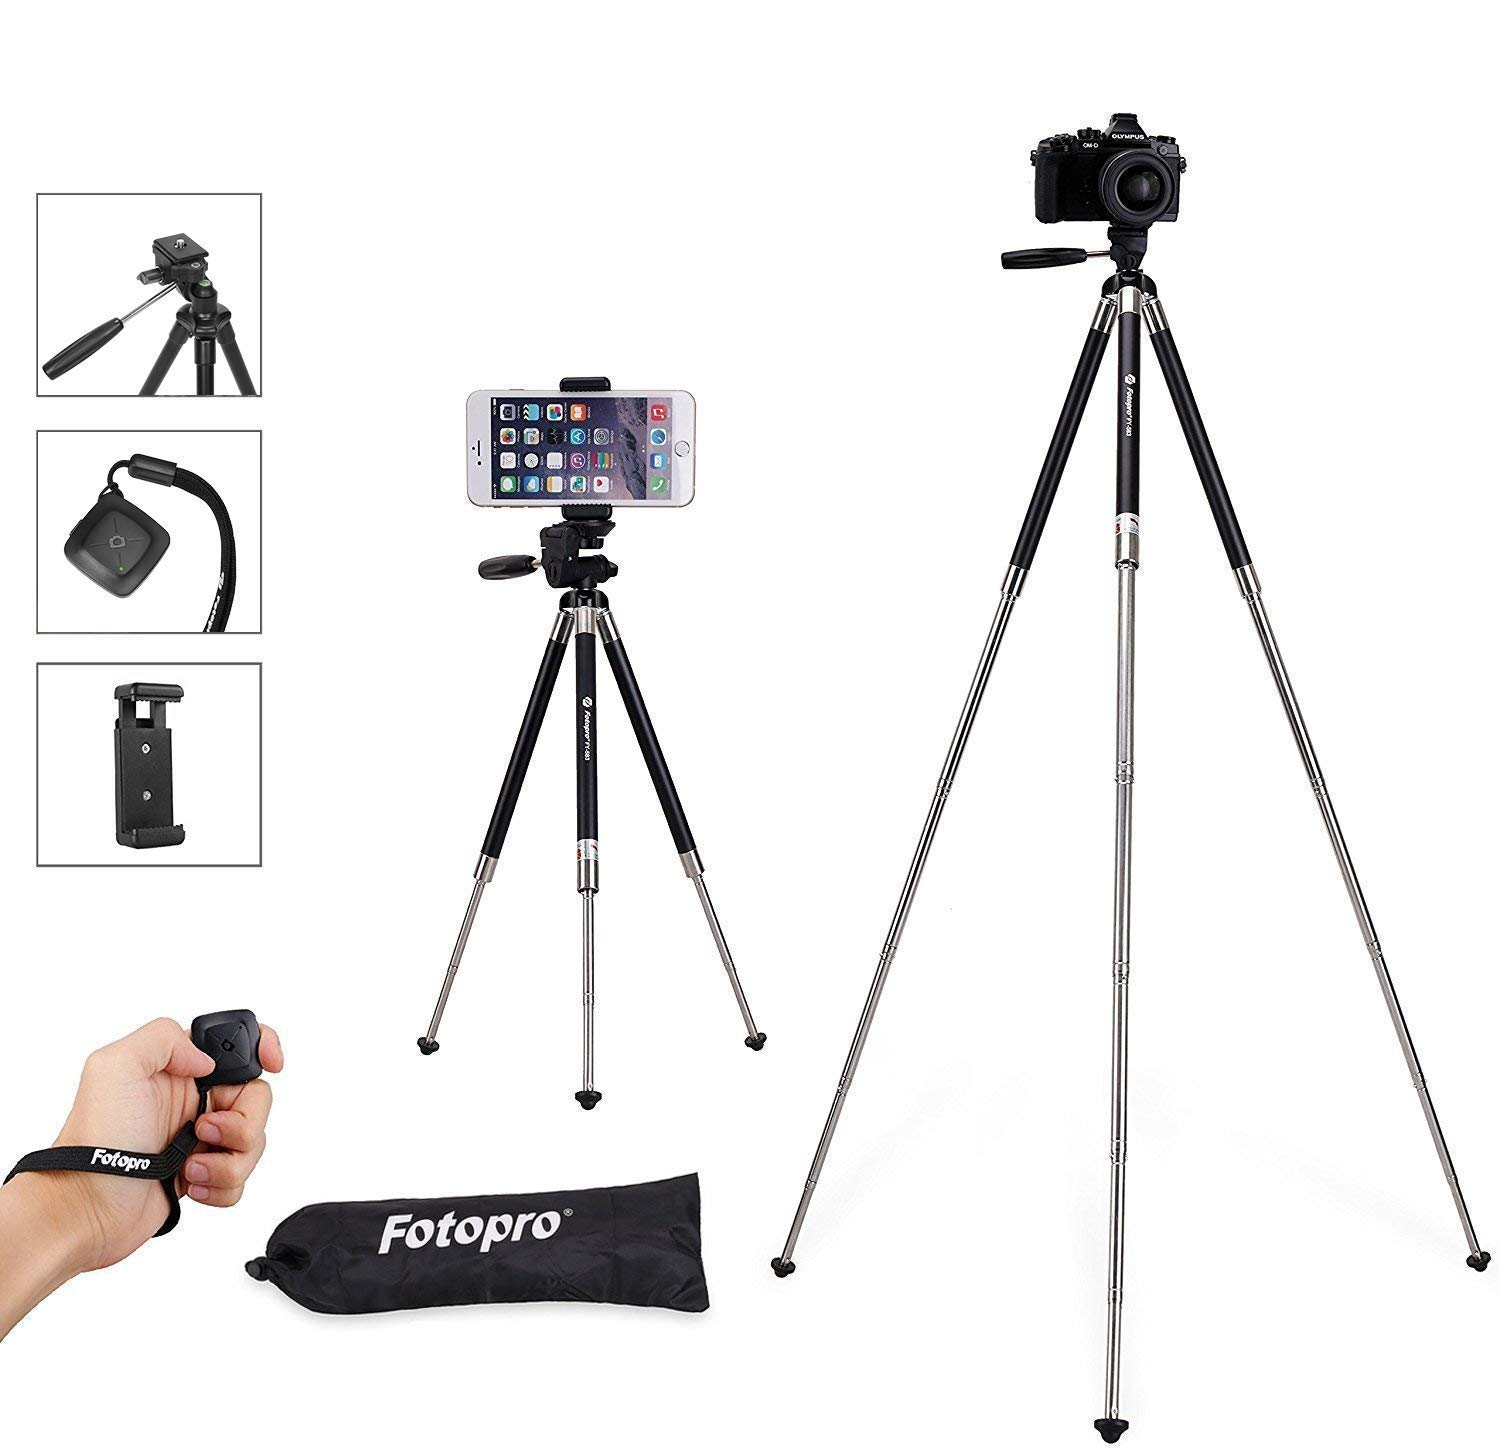 Fotopro Tripod for iPhone, 39.5'' Travel Aluminum Tripods with Phone Clamp and Bluetooth, Lightweight Portable Tripod for iPhone X 8 Plus, Samsung, Huawei (Black)